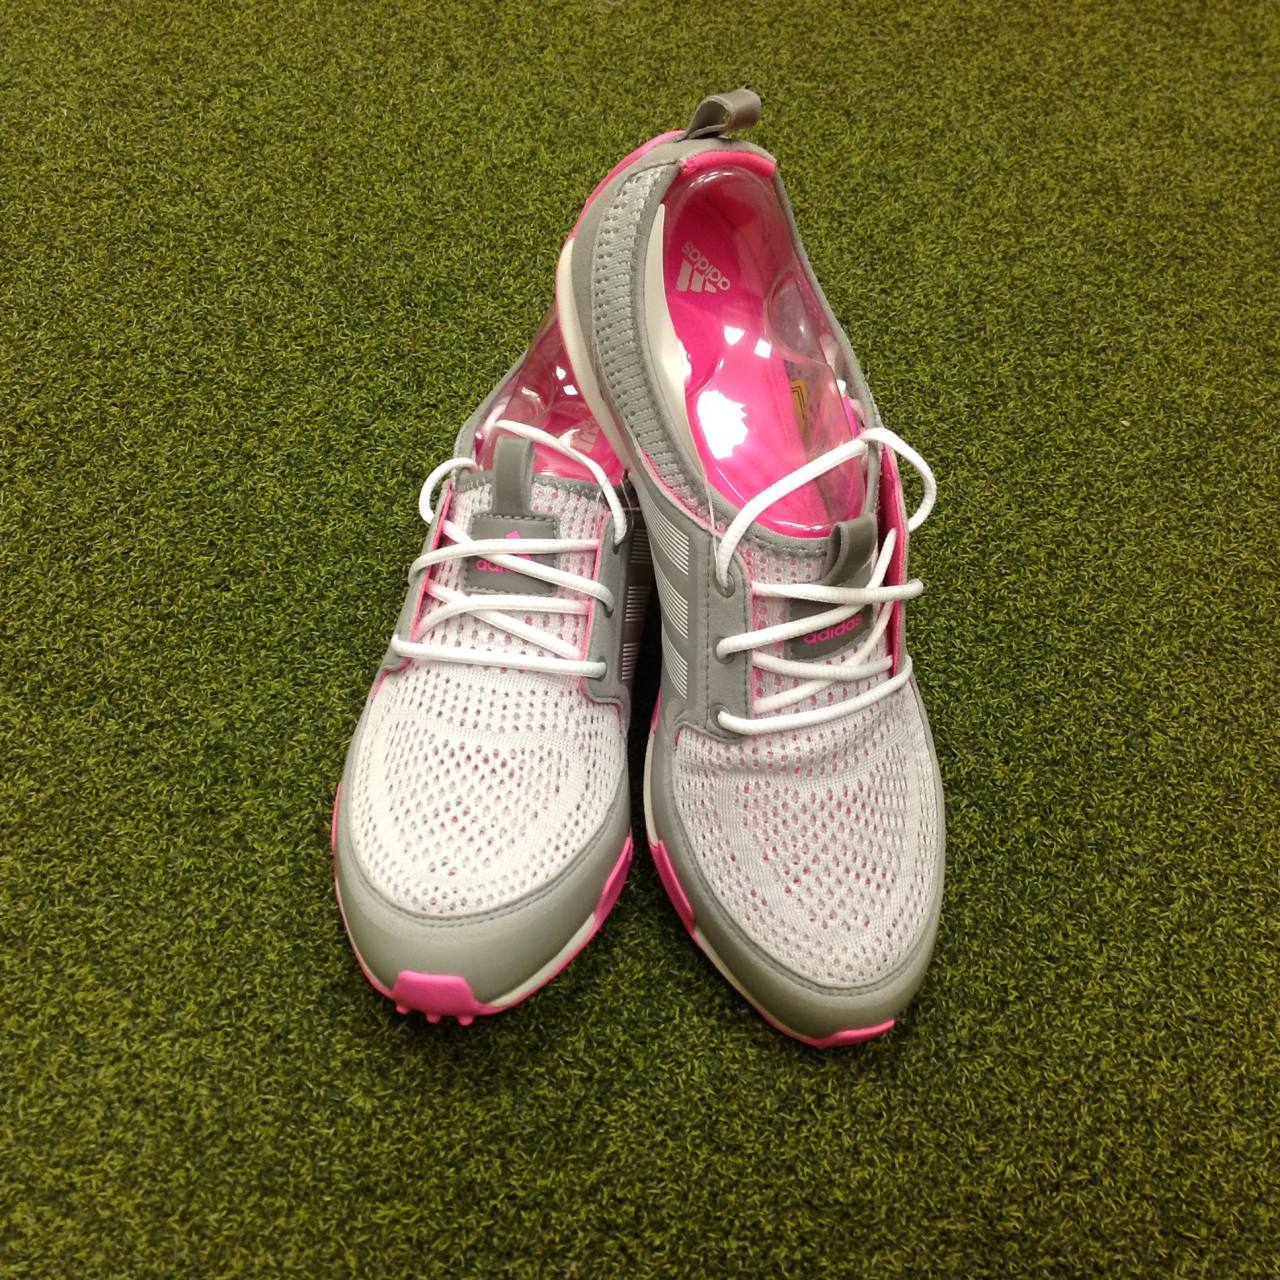 b7f0663bc9428 Details about NEW Ladies Adidas Climacool Ballerina II Golf Shoes - UK Size  5.5 - US 7.5 - .